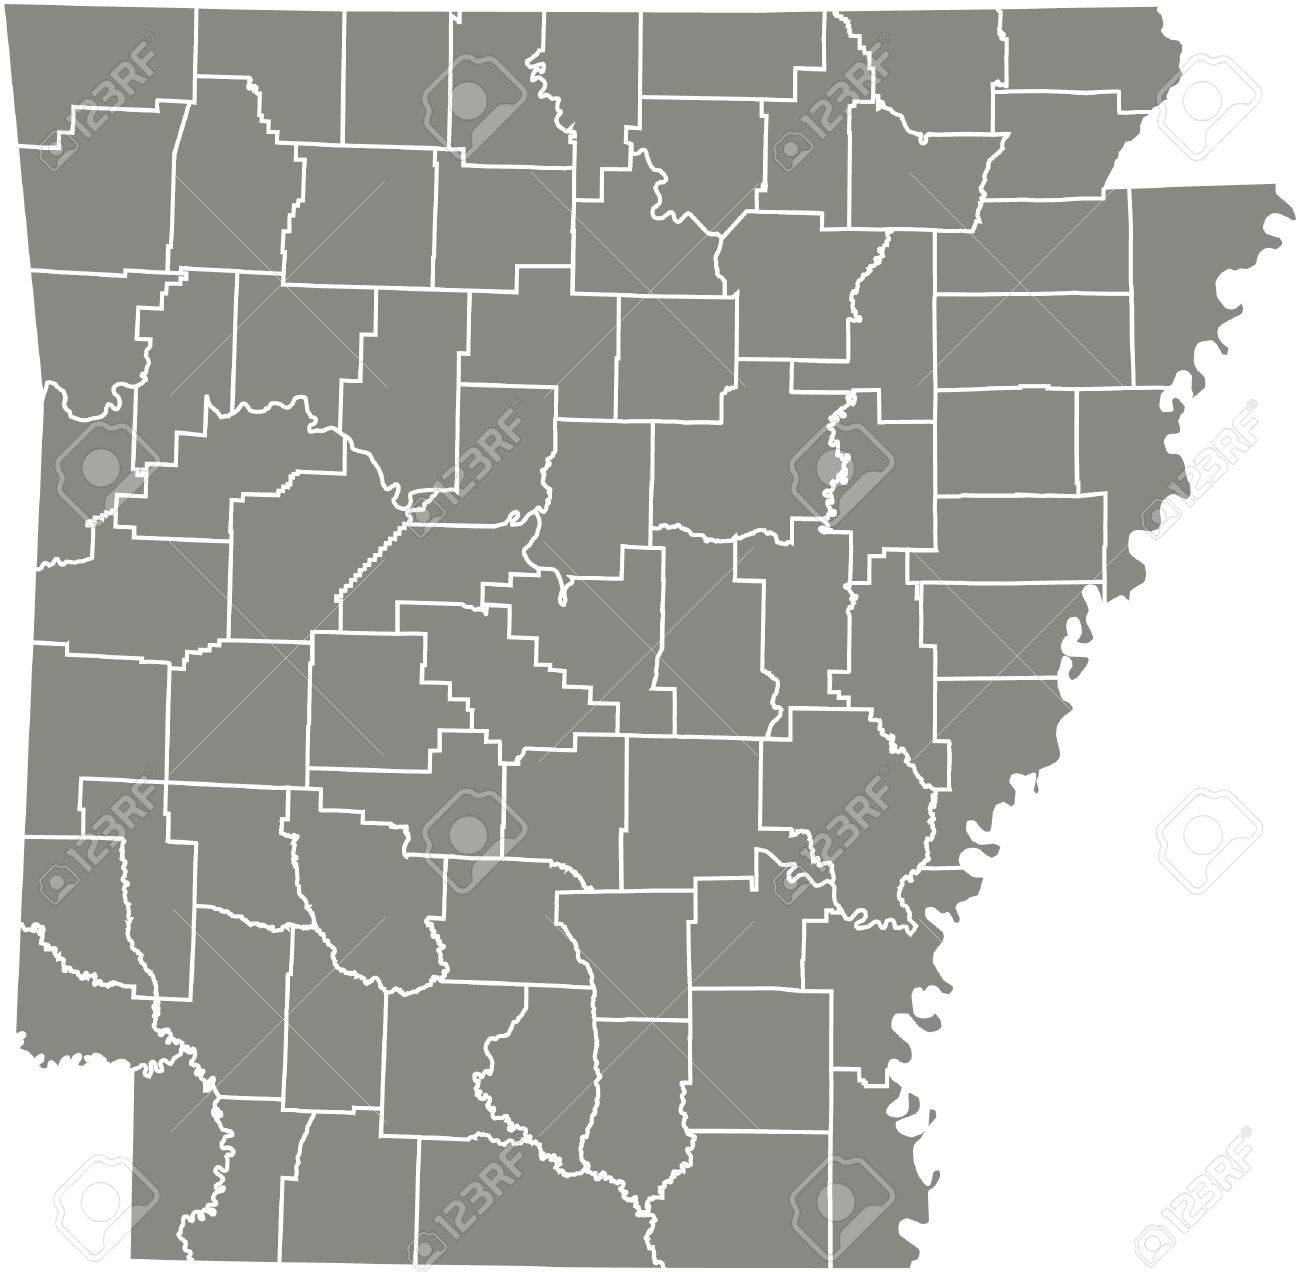 Arkansas county map vector outline in gray color on map of transportation, ar counties, map of scott, map of johnson, ark counties, map louisiana counties, map of drew, map of cross, map showing counties in arkansas, arkansas state map with counties, map florida counties, map california counties, map of arizona wildfires today, map kentucky counties, map mississippi counties, map of little river, map of louisiana parishes, map arkansas counties by population, map of white, map illinois counties,